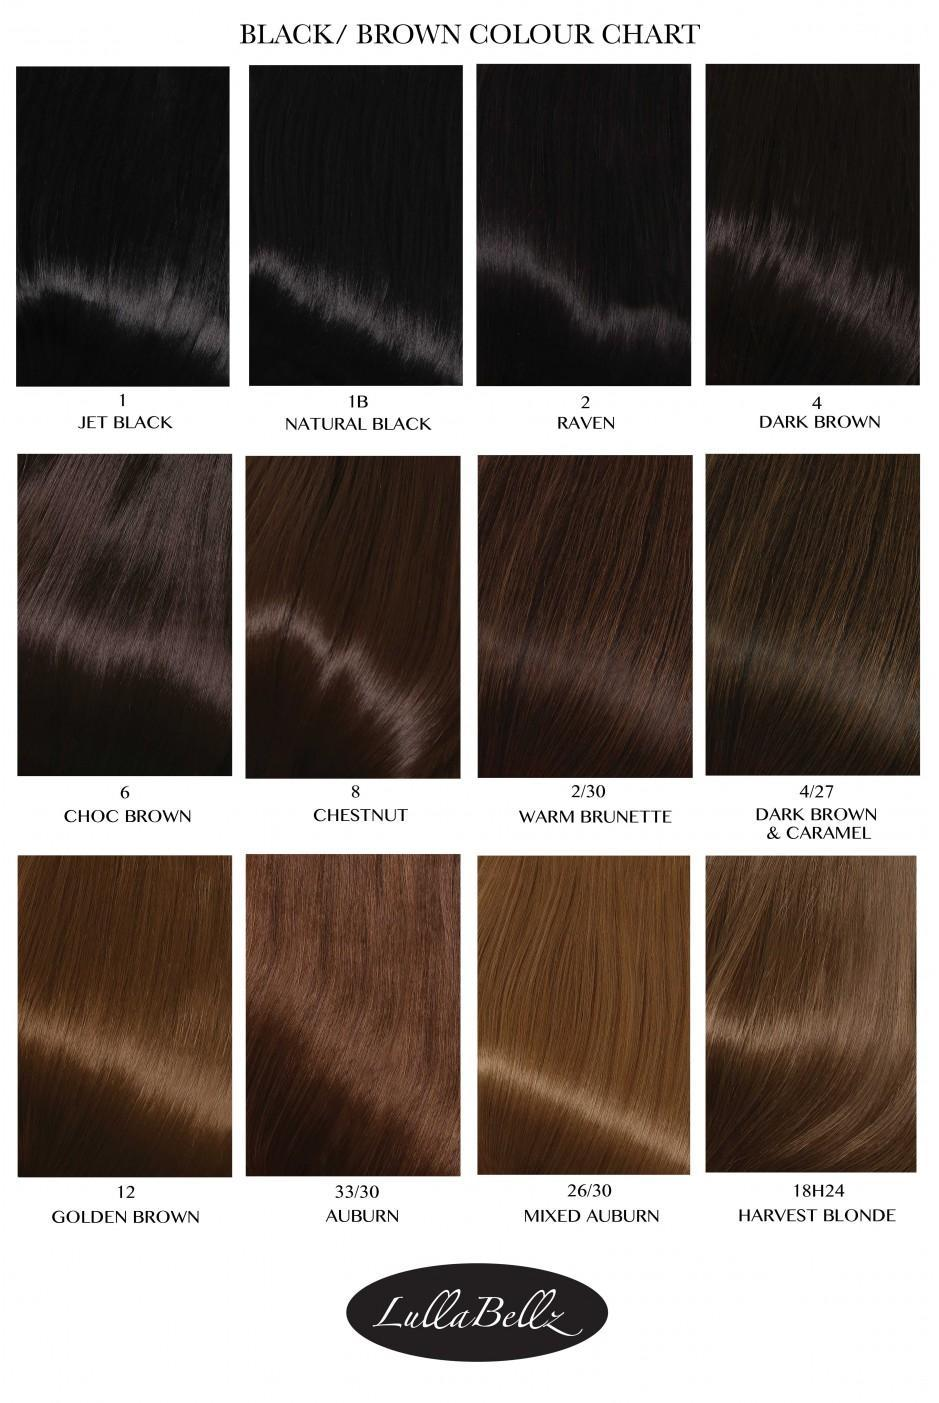 Product Notes Sanotint Light Color Chart Hair Dye Without Ppd